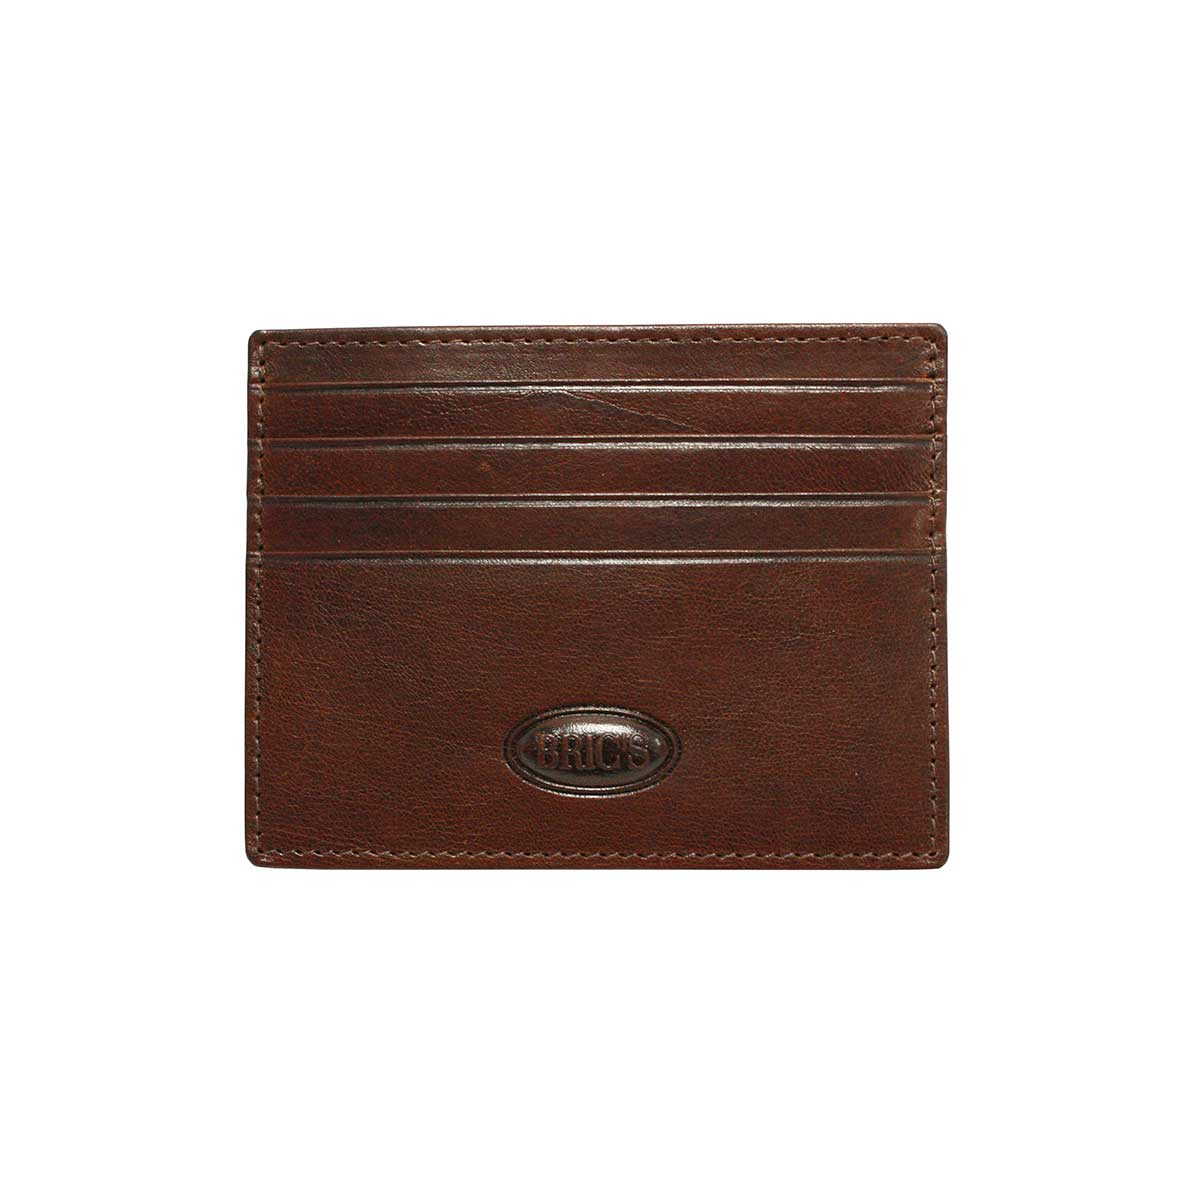 Monte Rosa Slim Card Case by Brics (Color: Dark Brown)